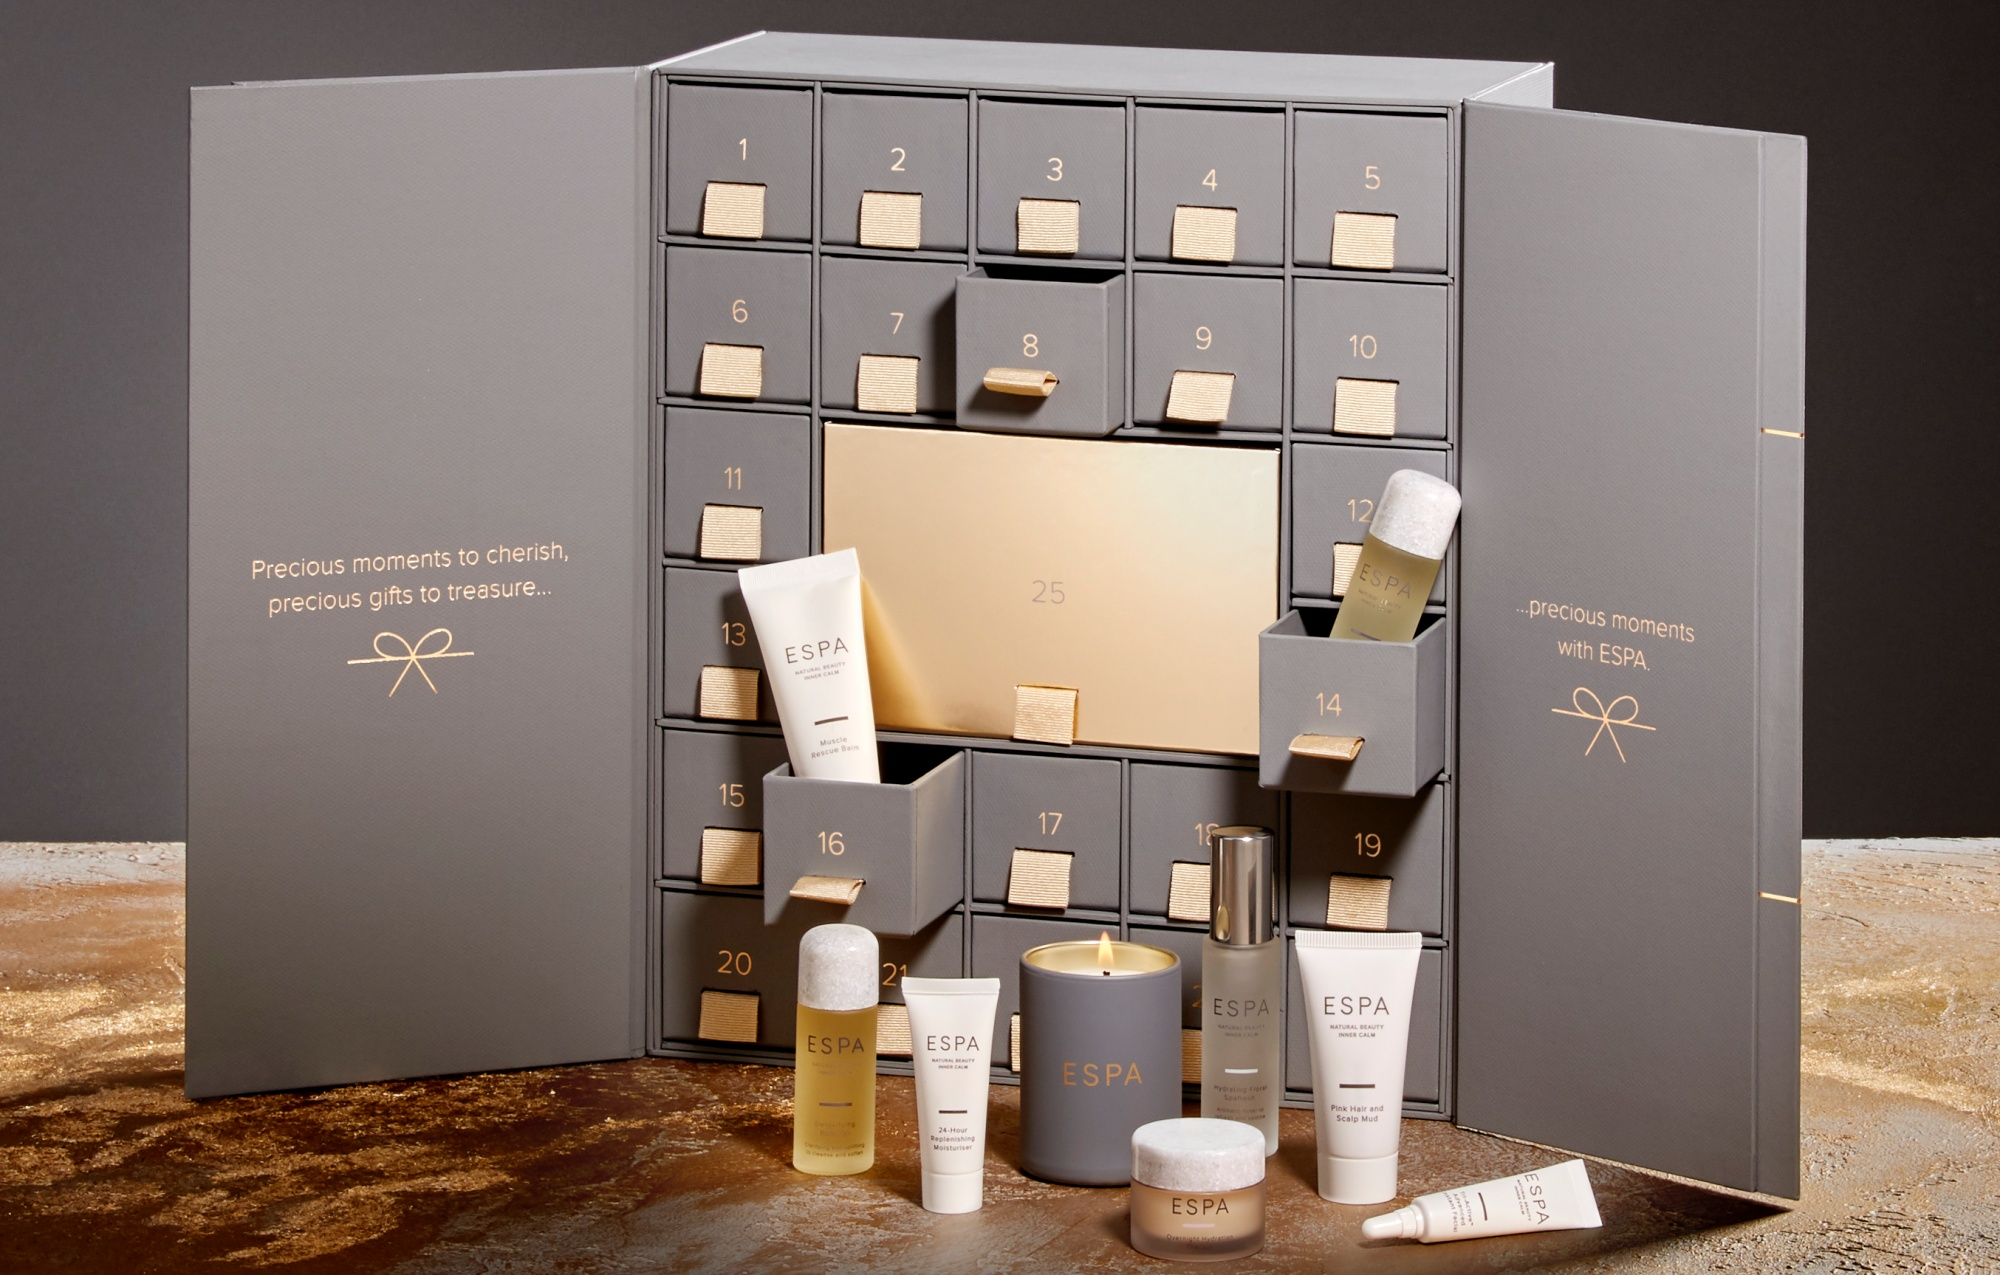 ESPA advent calendar 2019 - The LDN Diaries